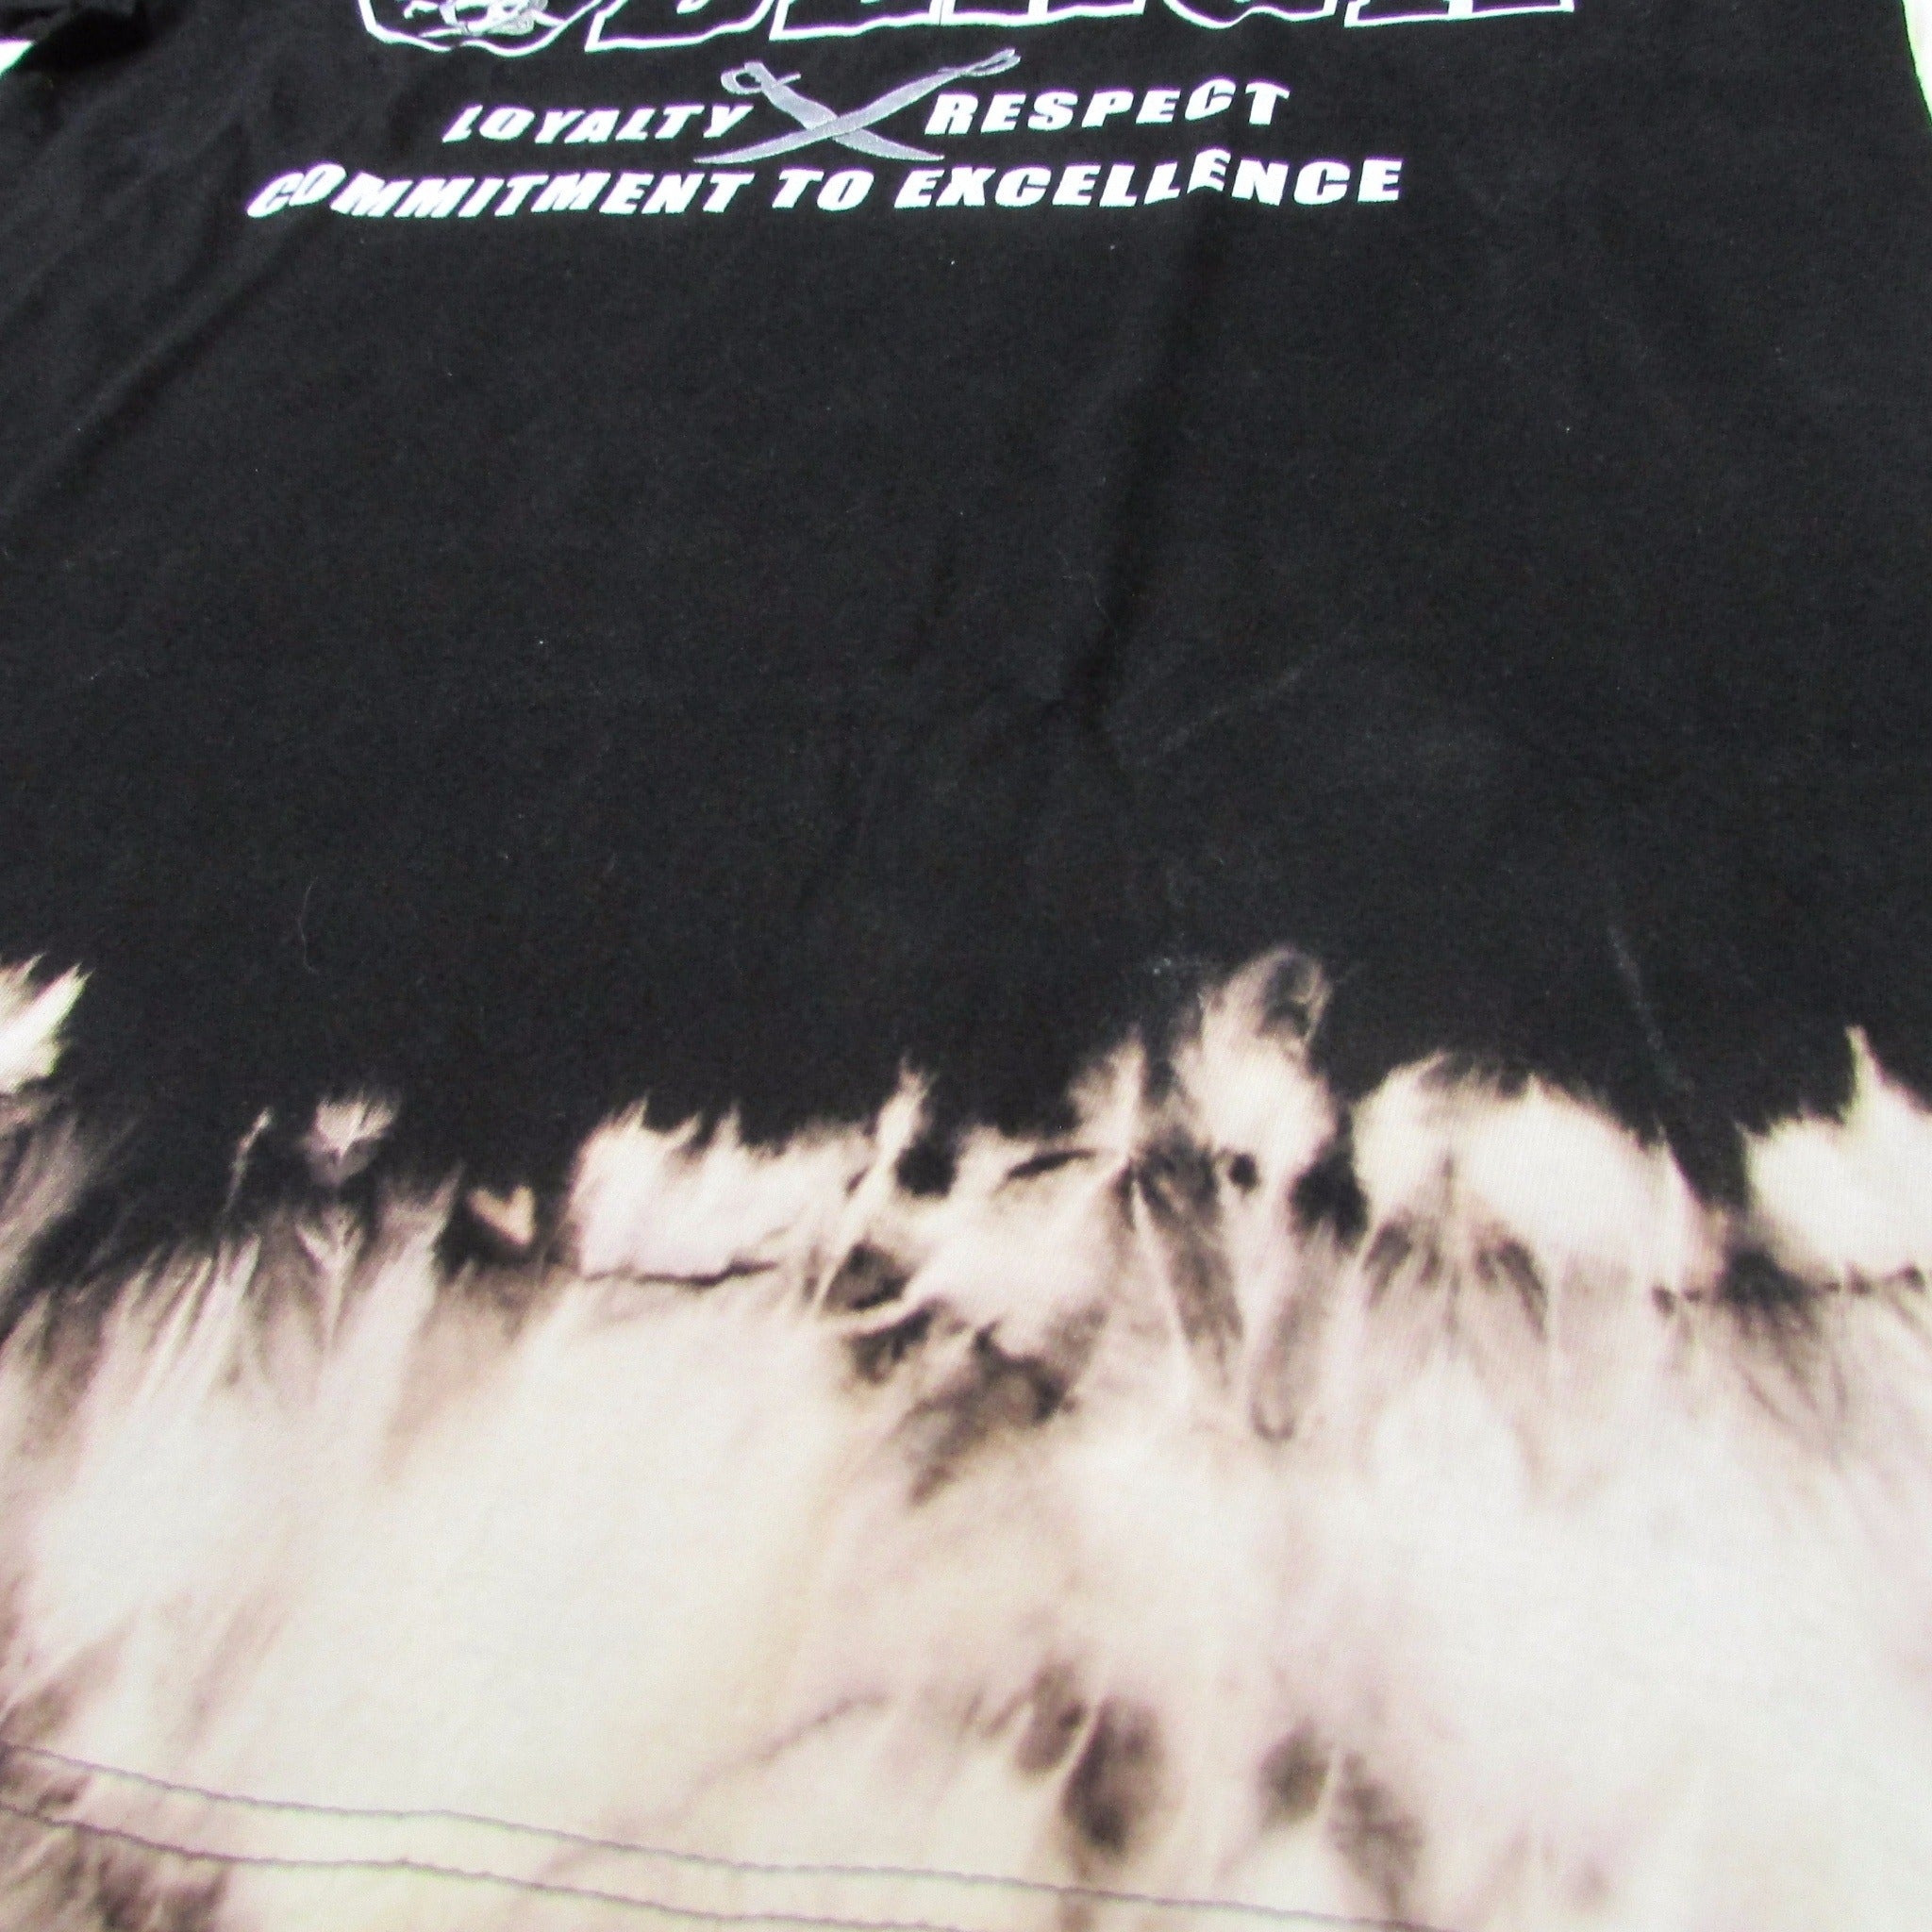 Oakland Raiders Silver and Black Bleach Drip Tie Dye T-Shirt Sz L